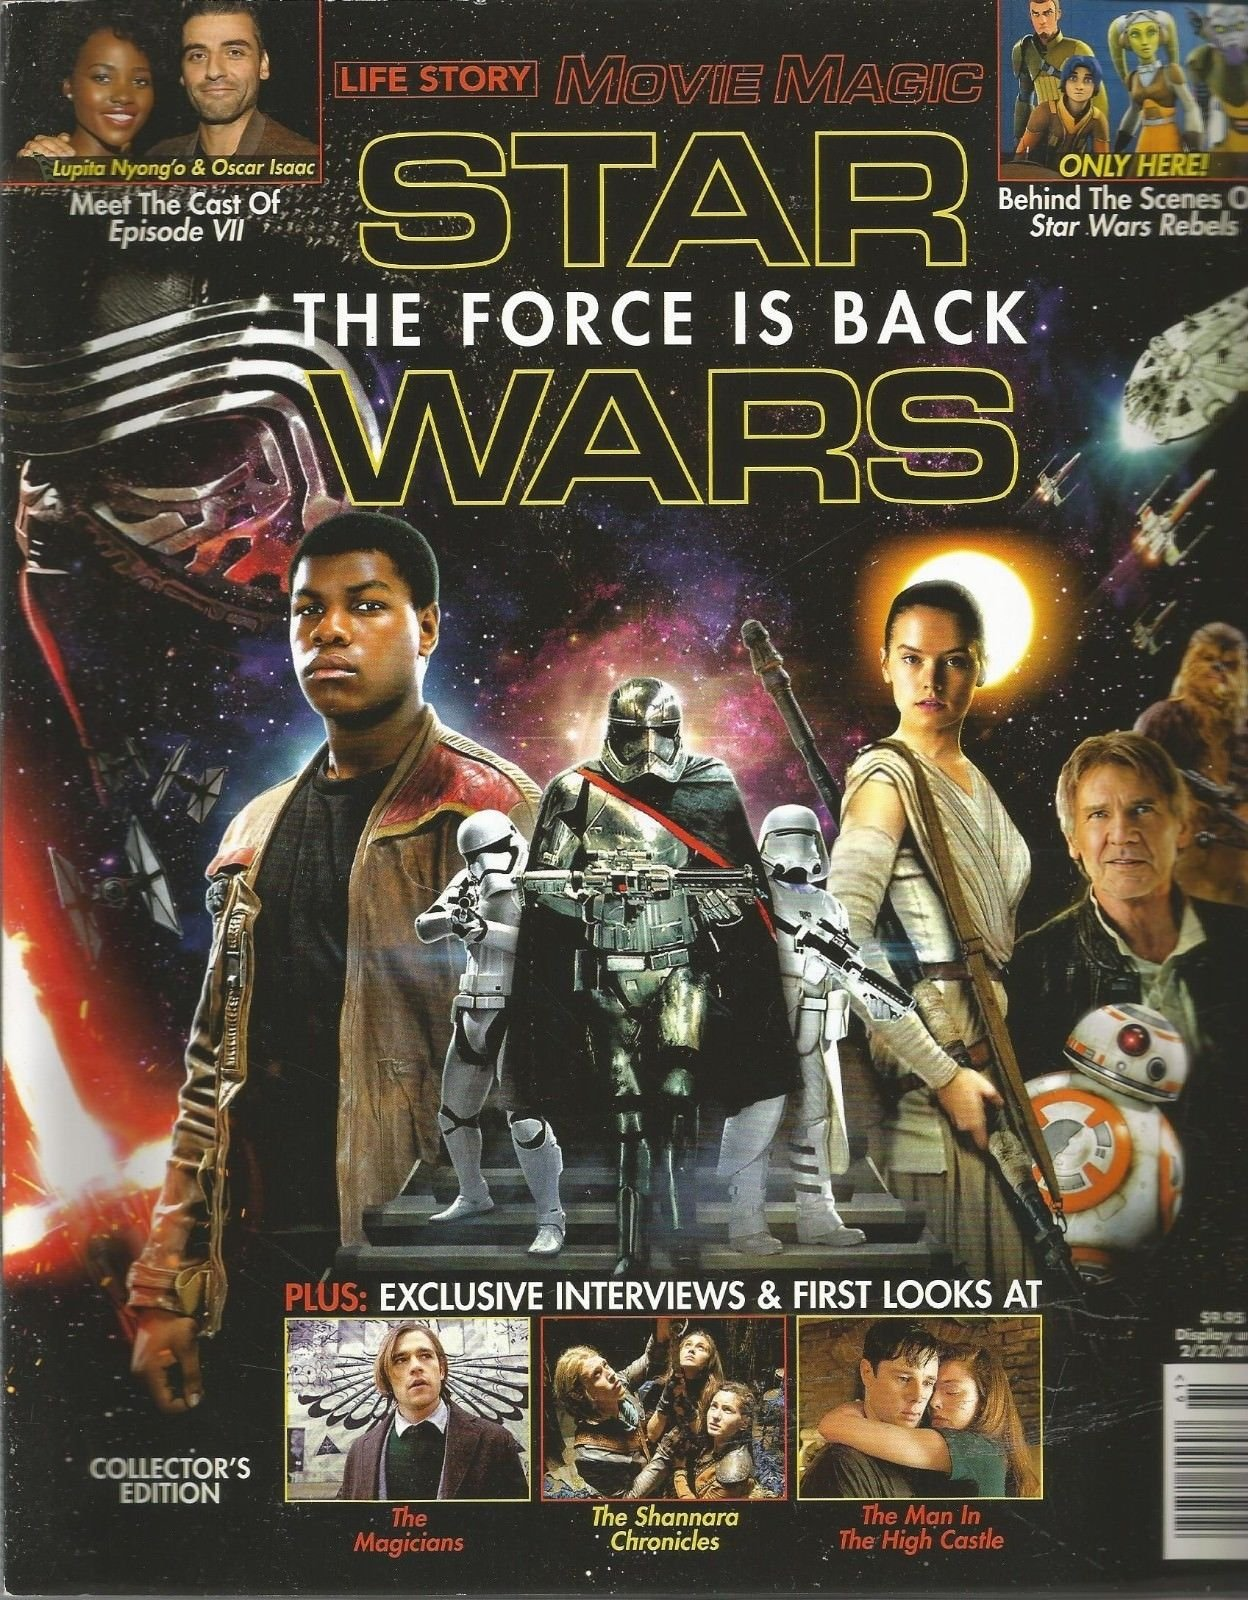 LIFE STORY, MOVIE MAGIC, STAR WARS THE FORCE IS BACK, 2016 ~